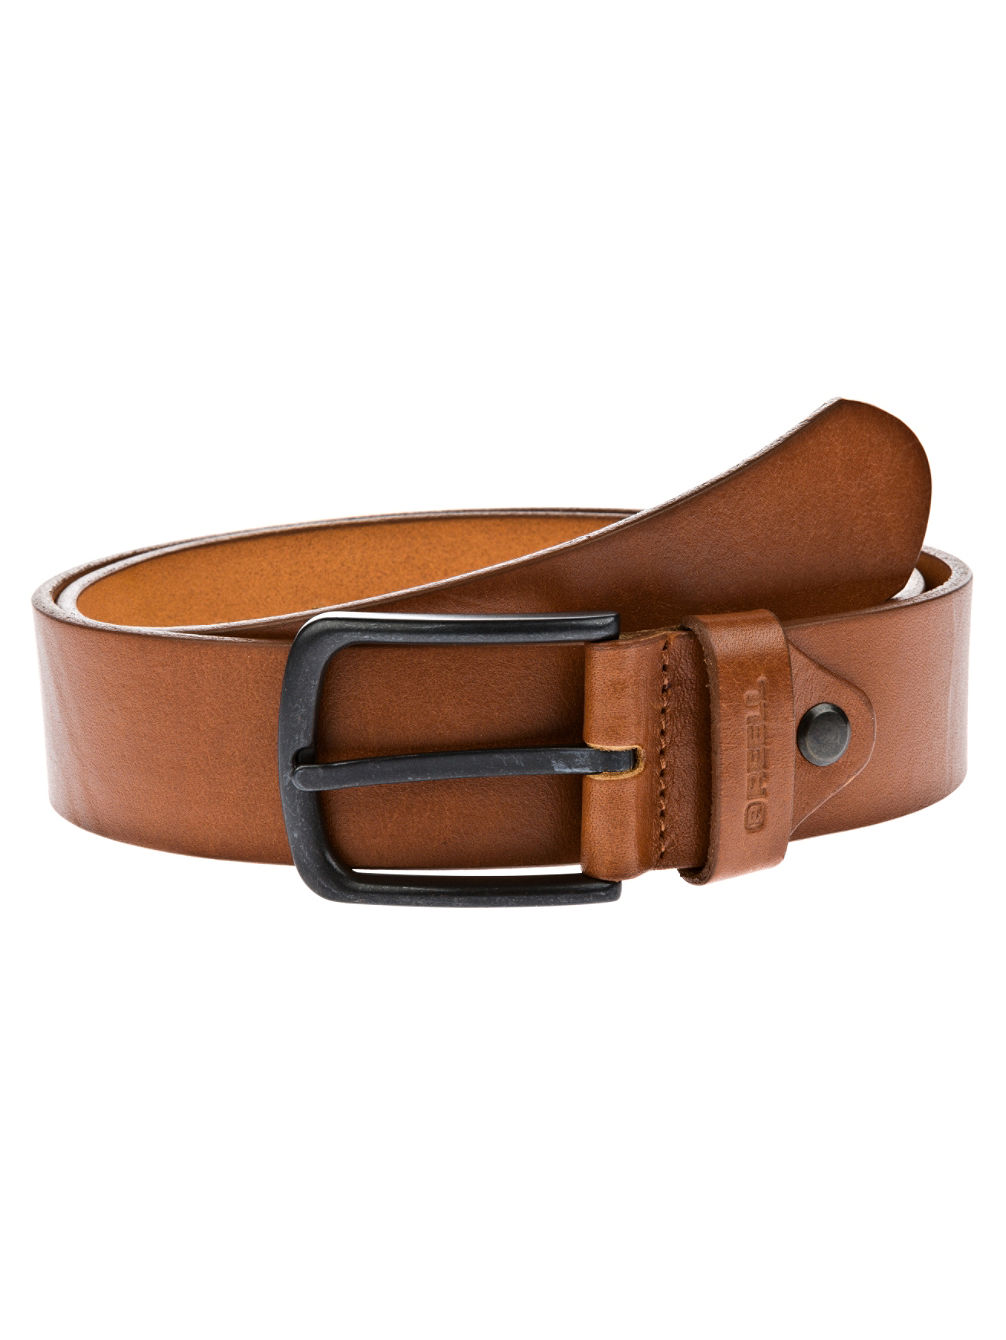 All Black Buckle Gürtel